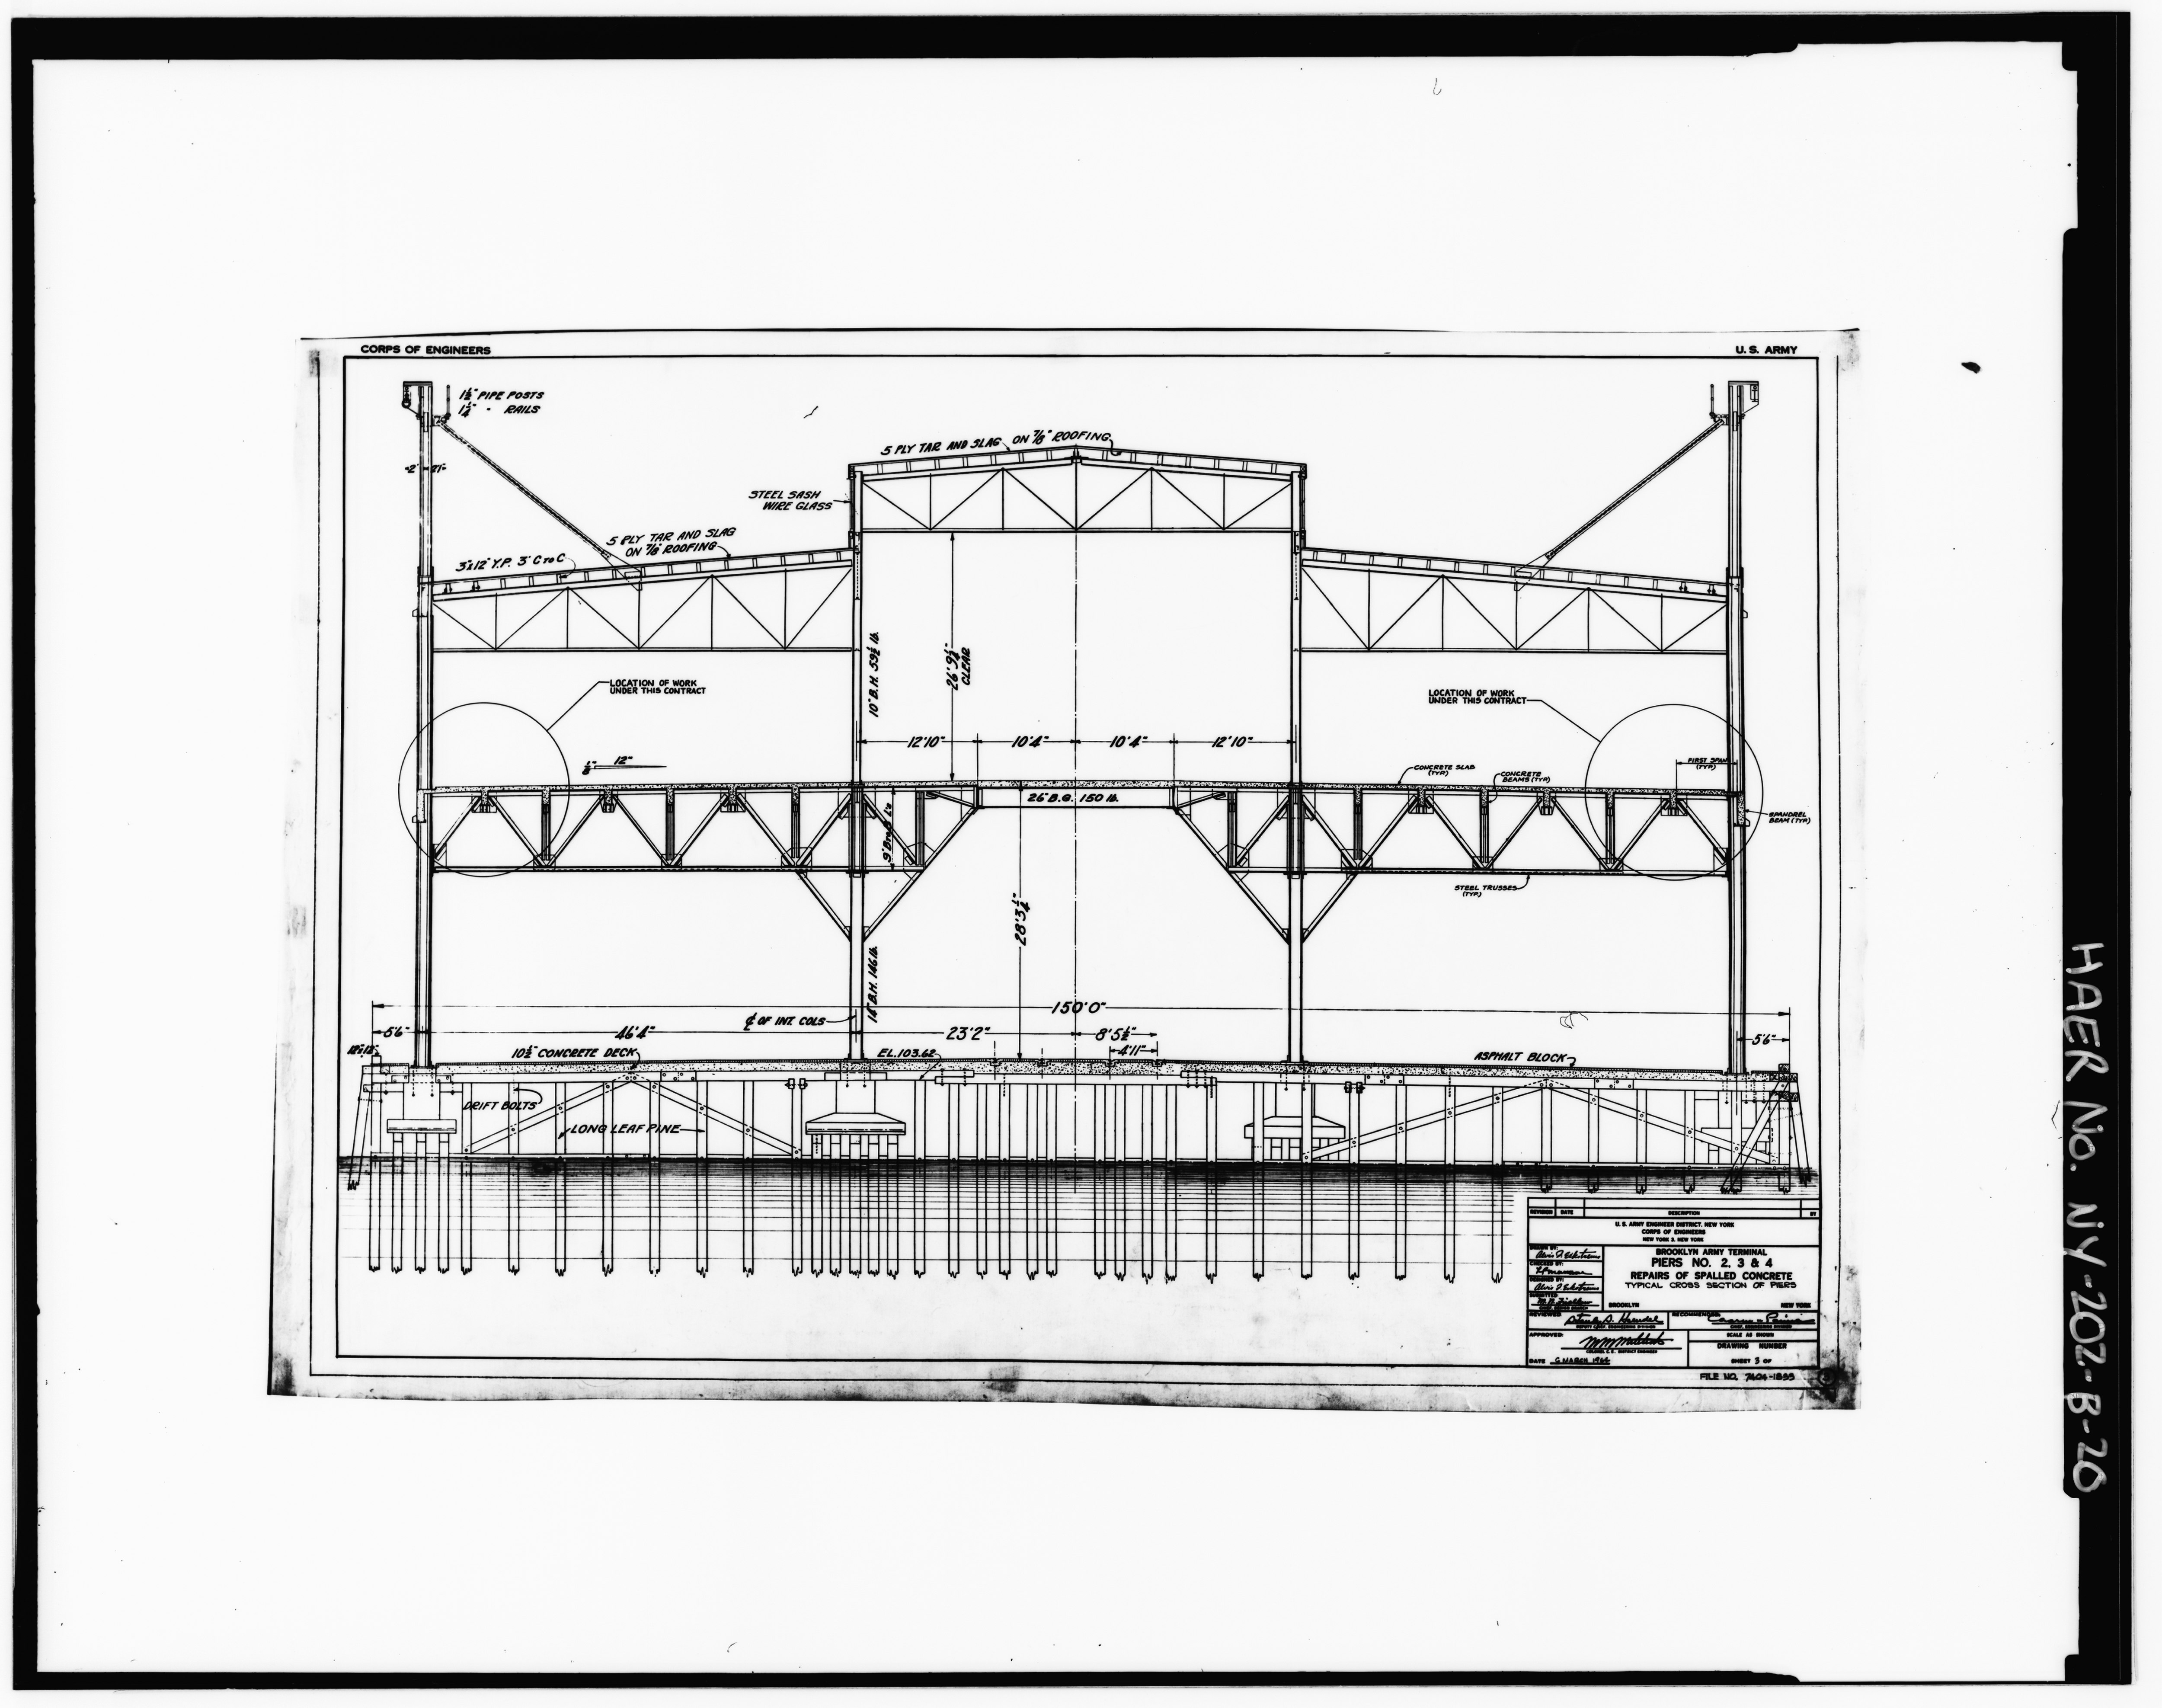 File Photocopy Of Original Drawing By Us Army Engineer District Corps Of Engineers